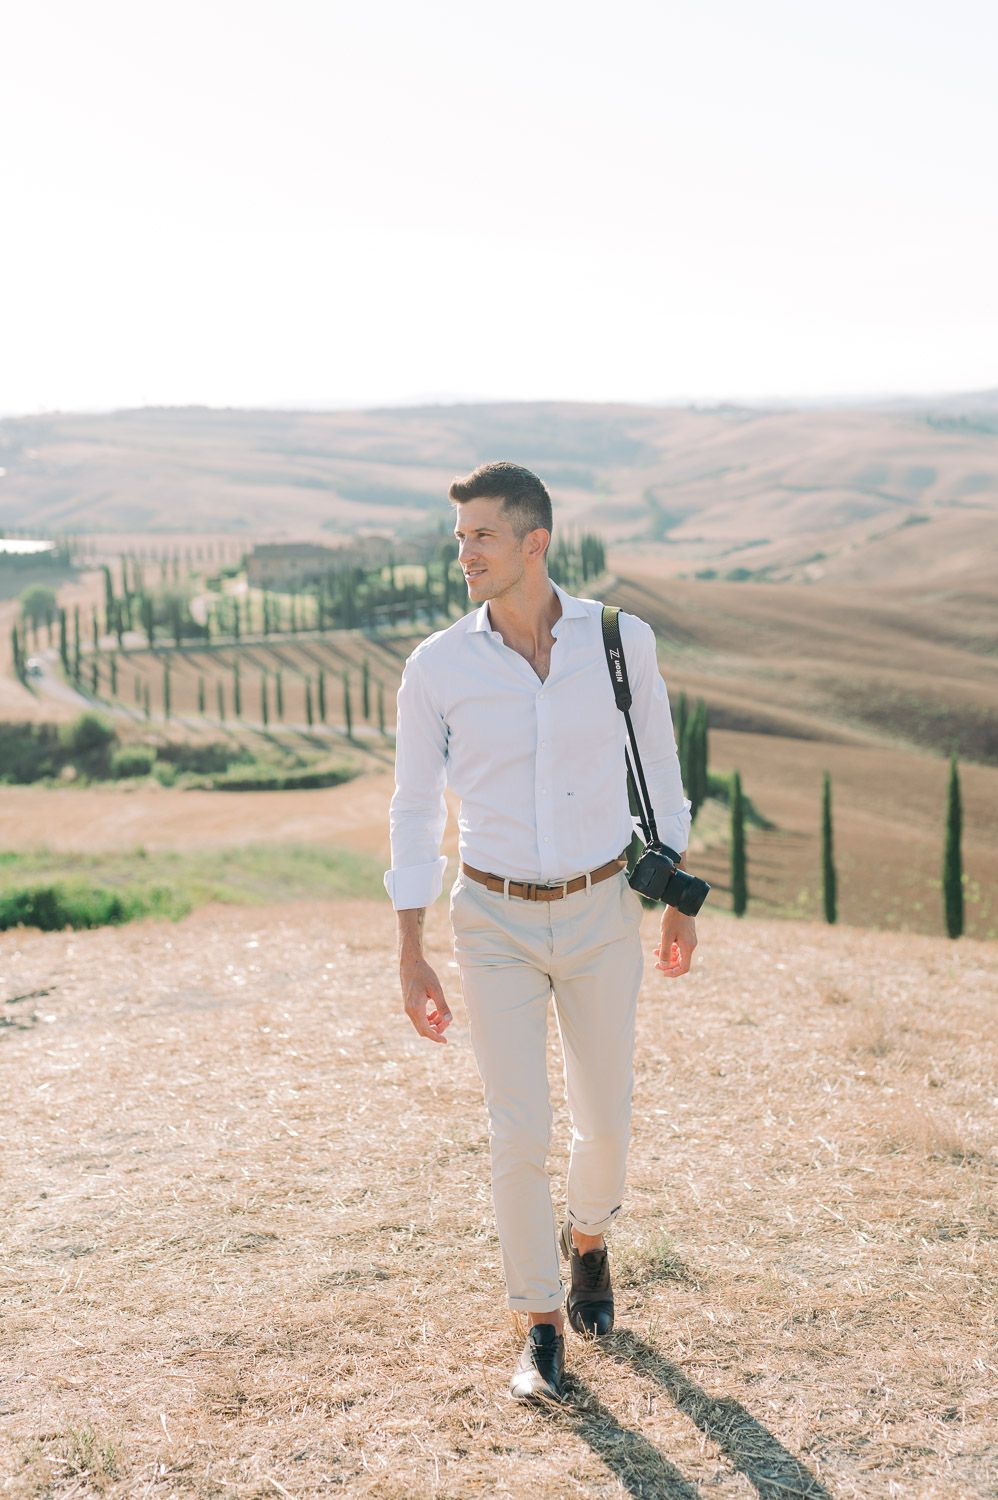 mario casati destination wedding photographer